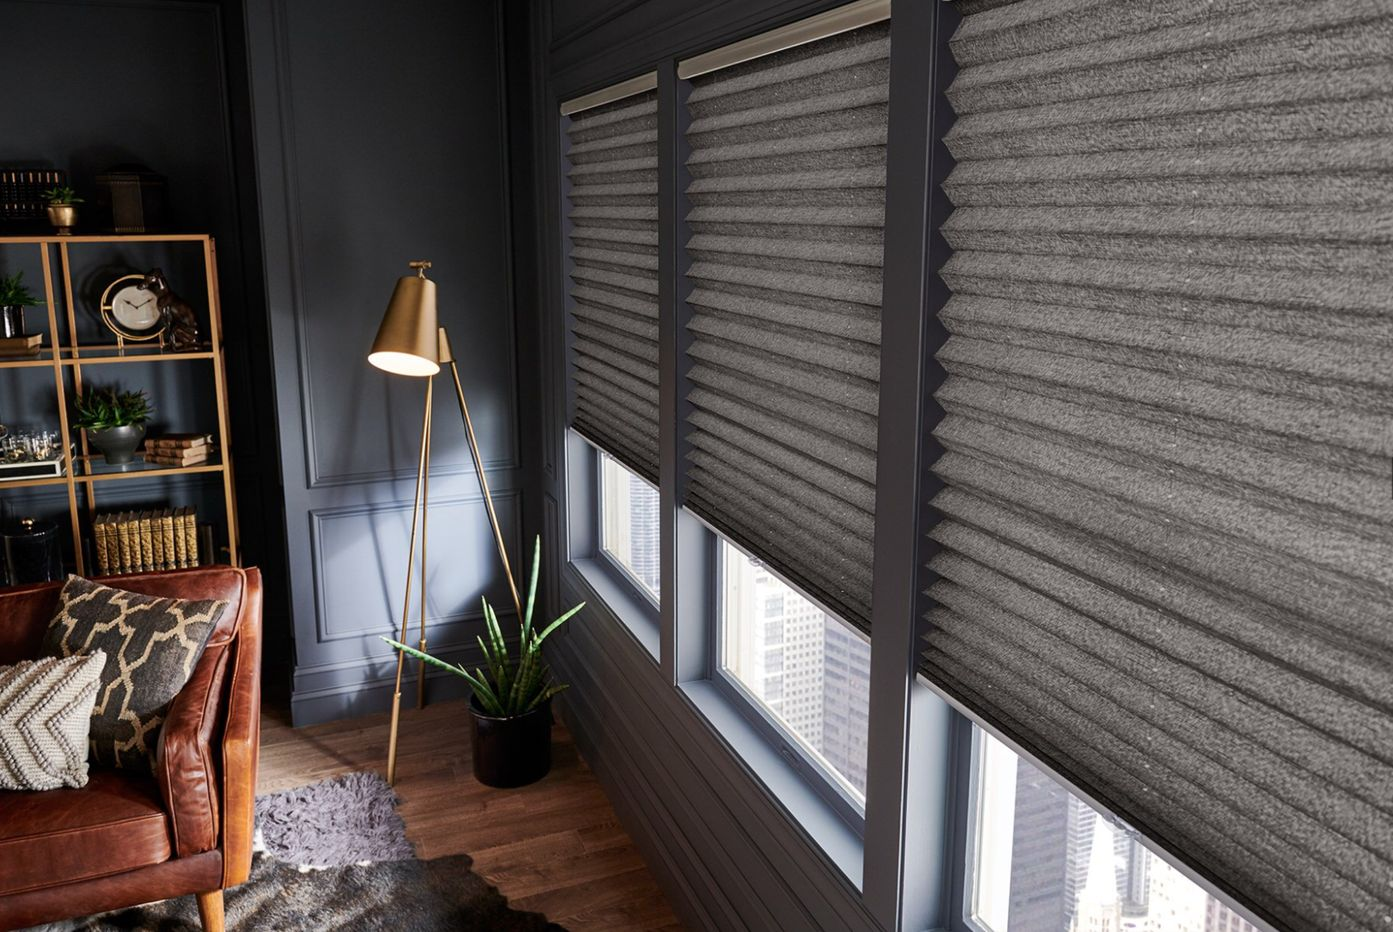 Cellular Shades, Blinds, Composite Blinds